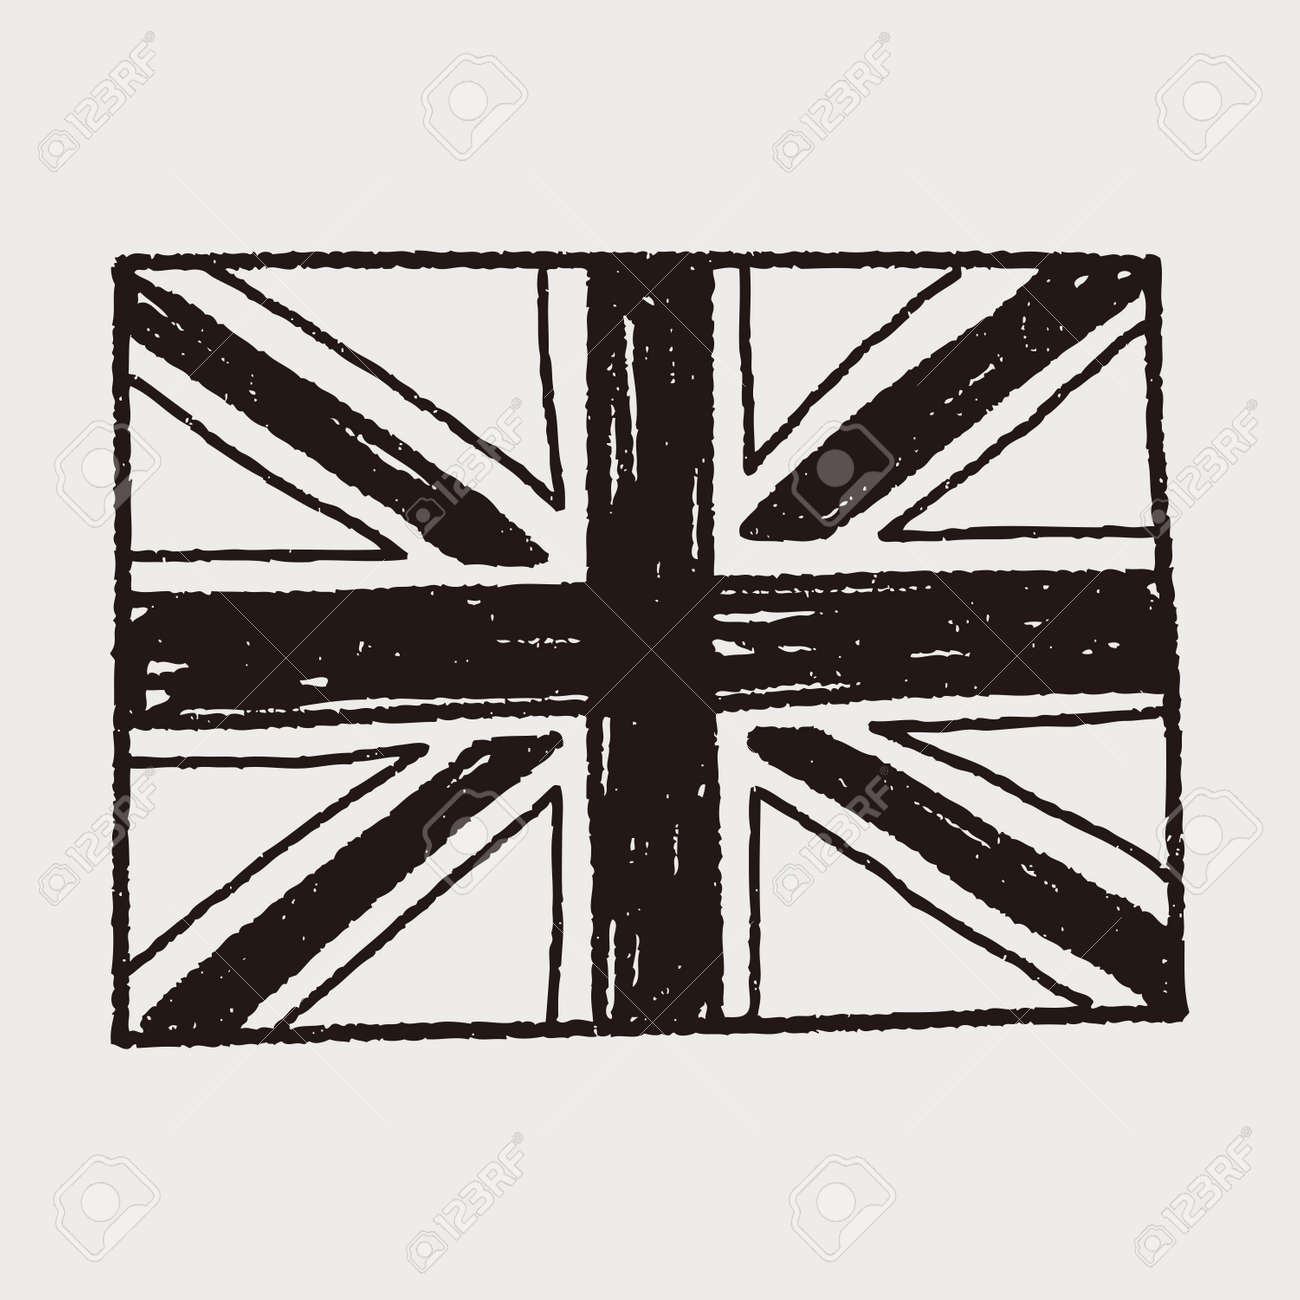 uk flag doodle royalty free cliparts vectors and stock